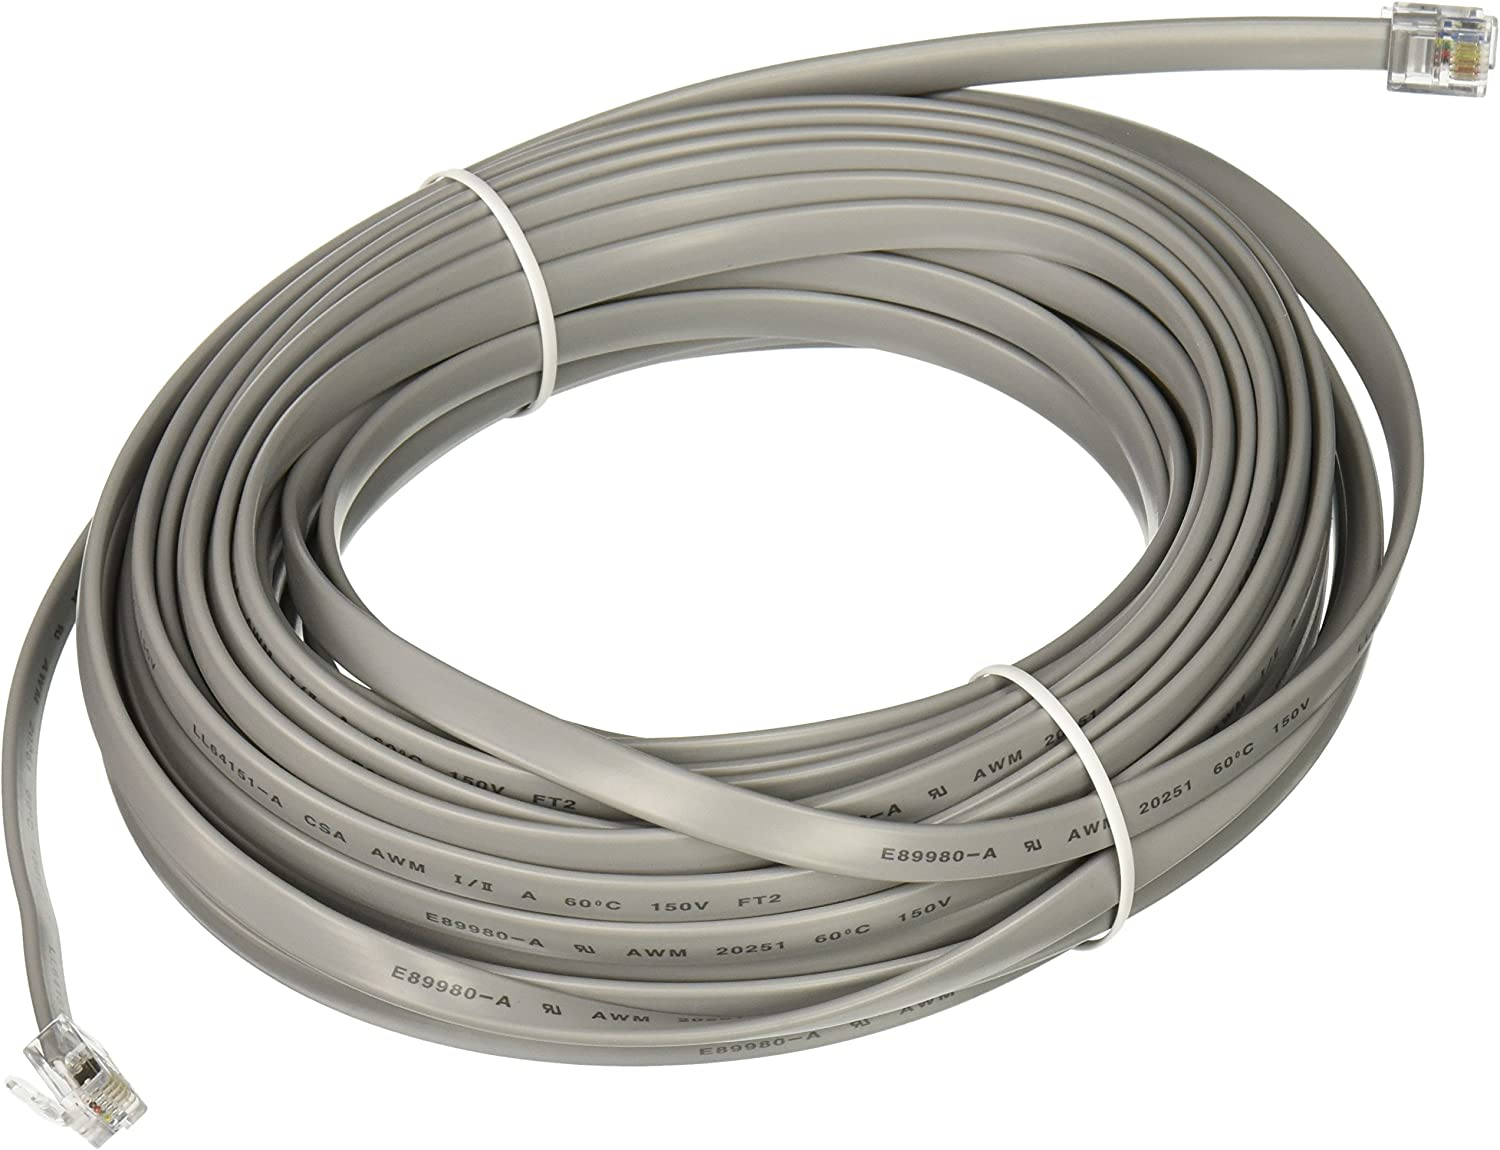 20cm cable Straight wired RJ12 cable